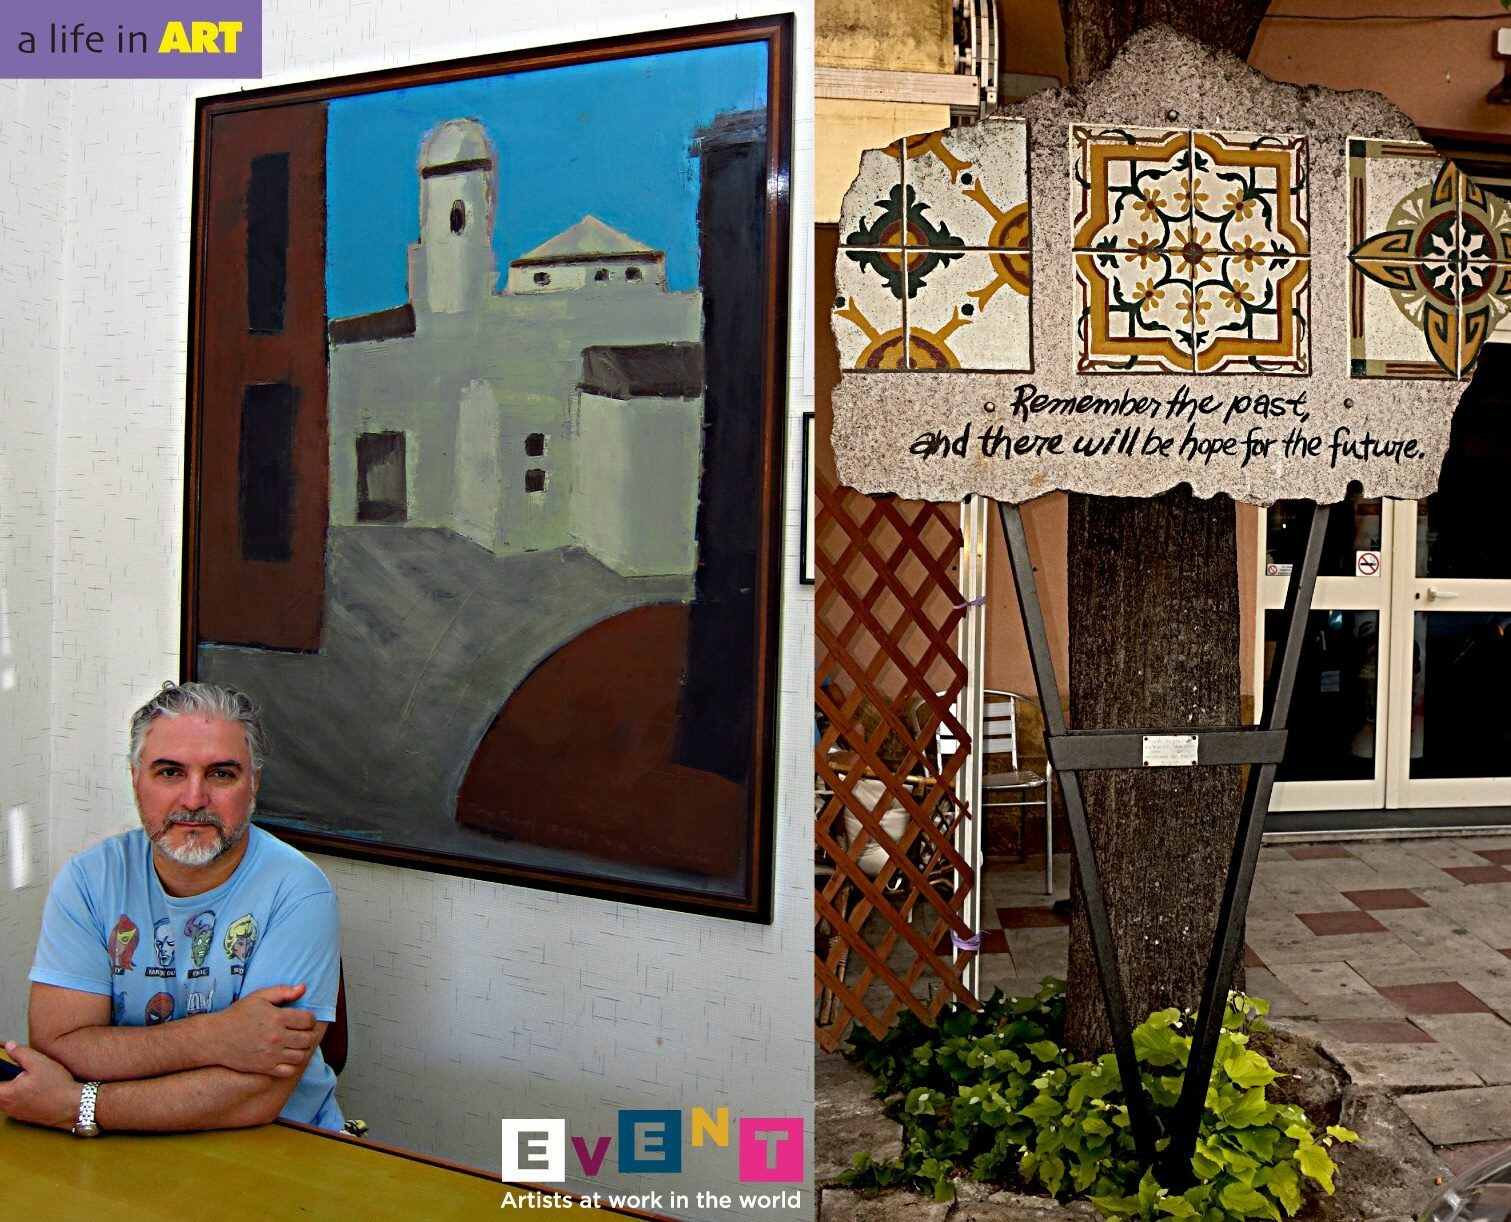 Vince Mancuso in Italy with his painting IT BEGINS, 4x5 feet, oil on canvas and to the right photo of his public sculpture in the town of Delia, Italy.